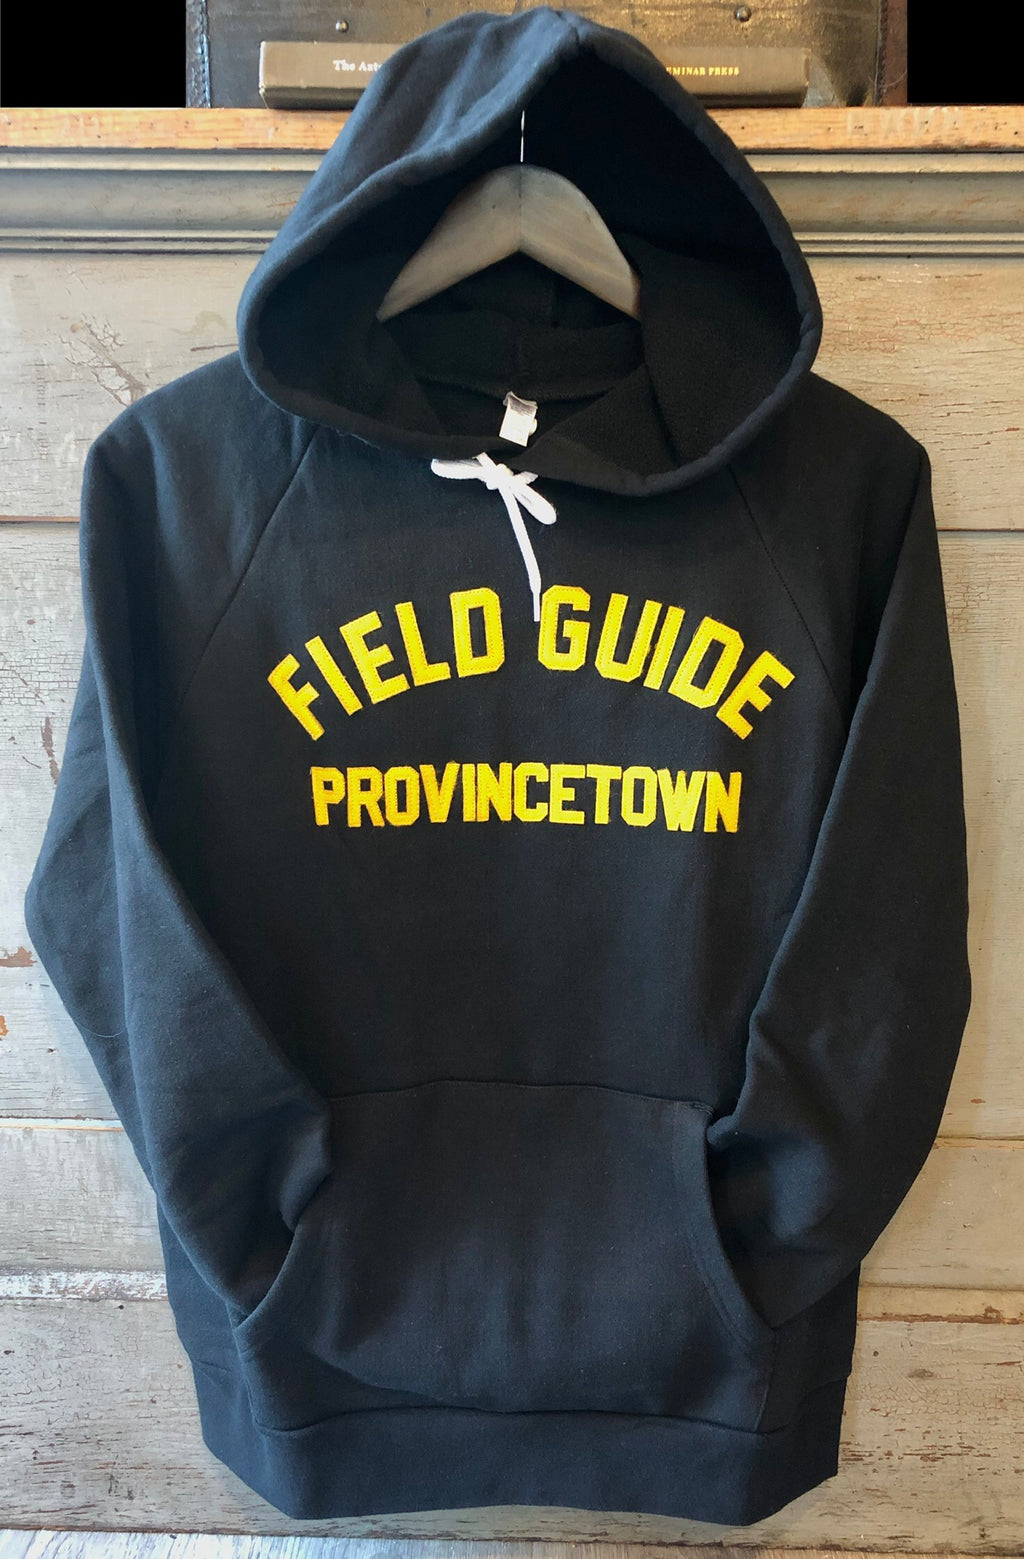 Provincetown Heavyweight Hoodie in Black and Gold